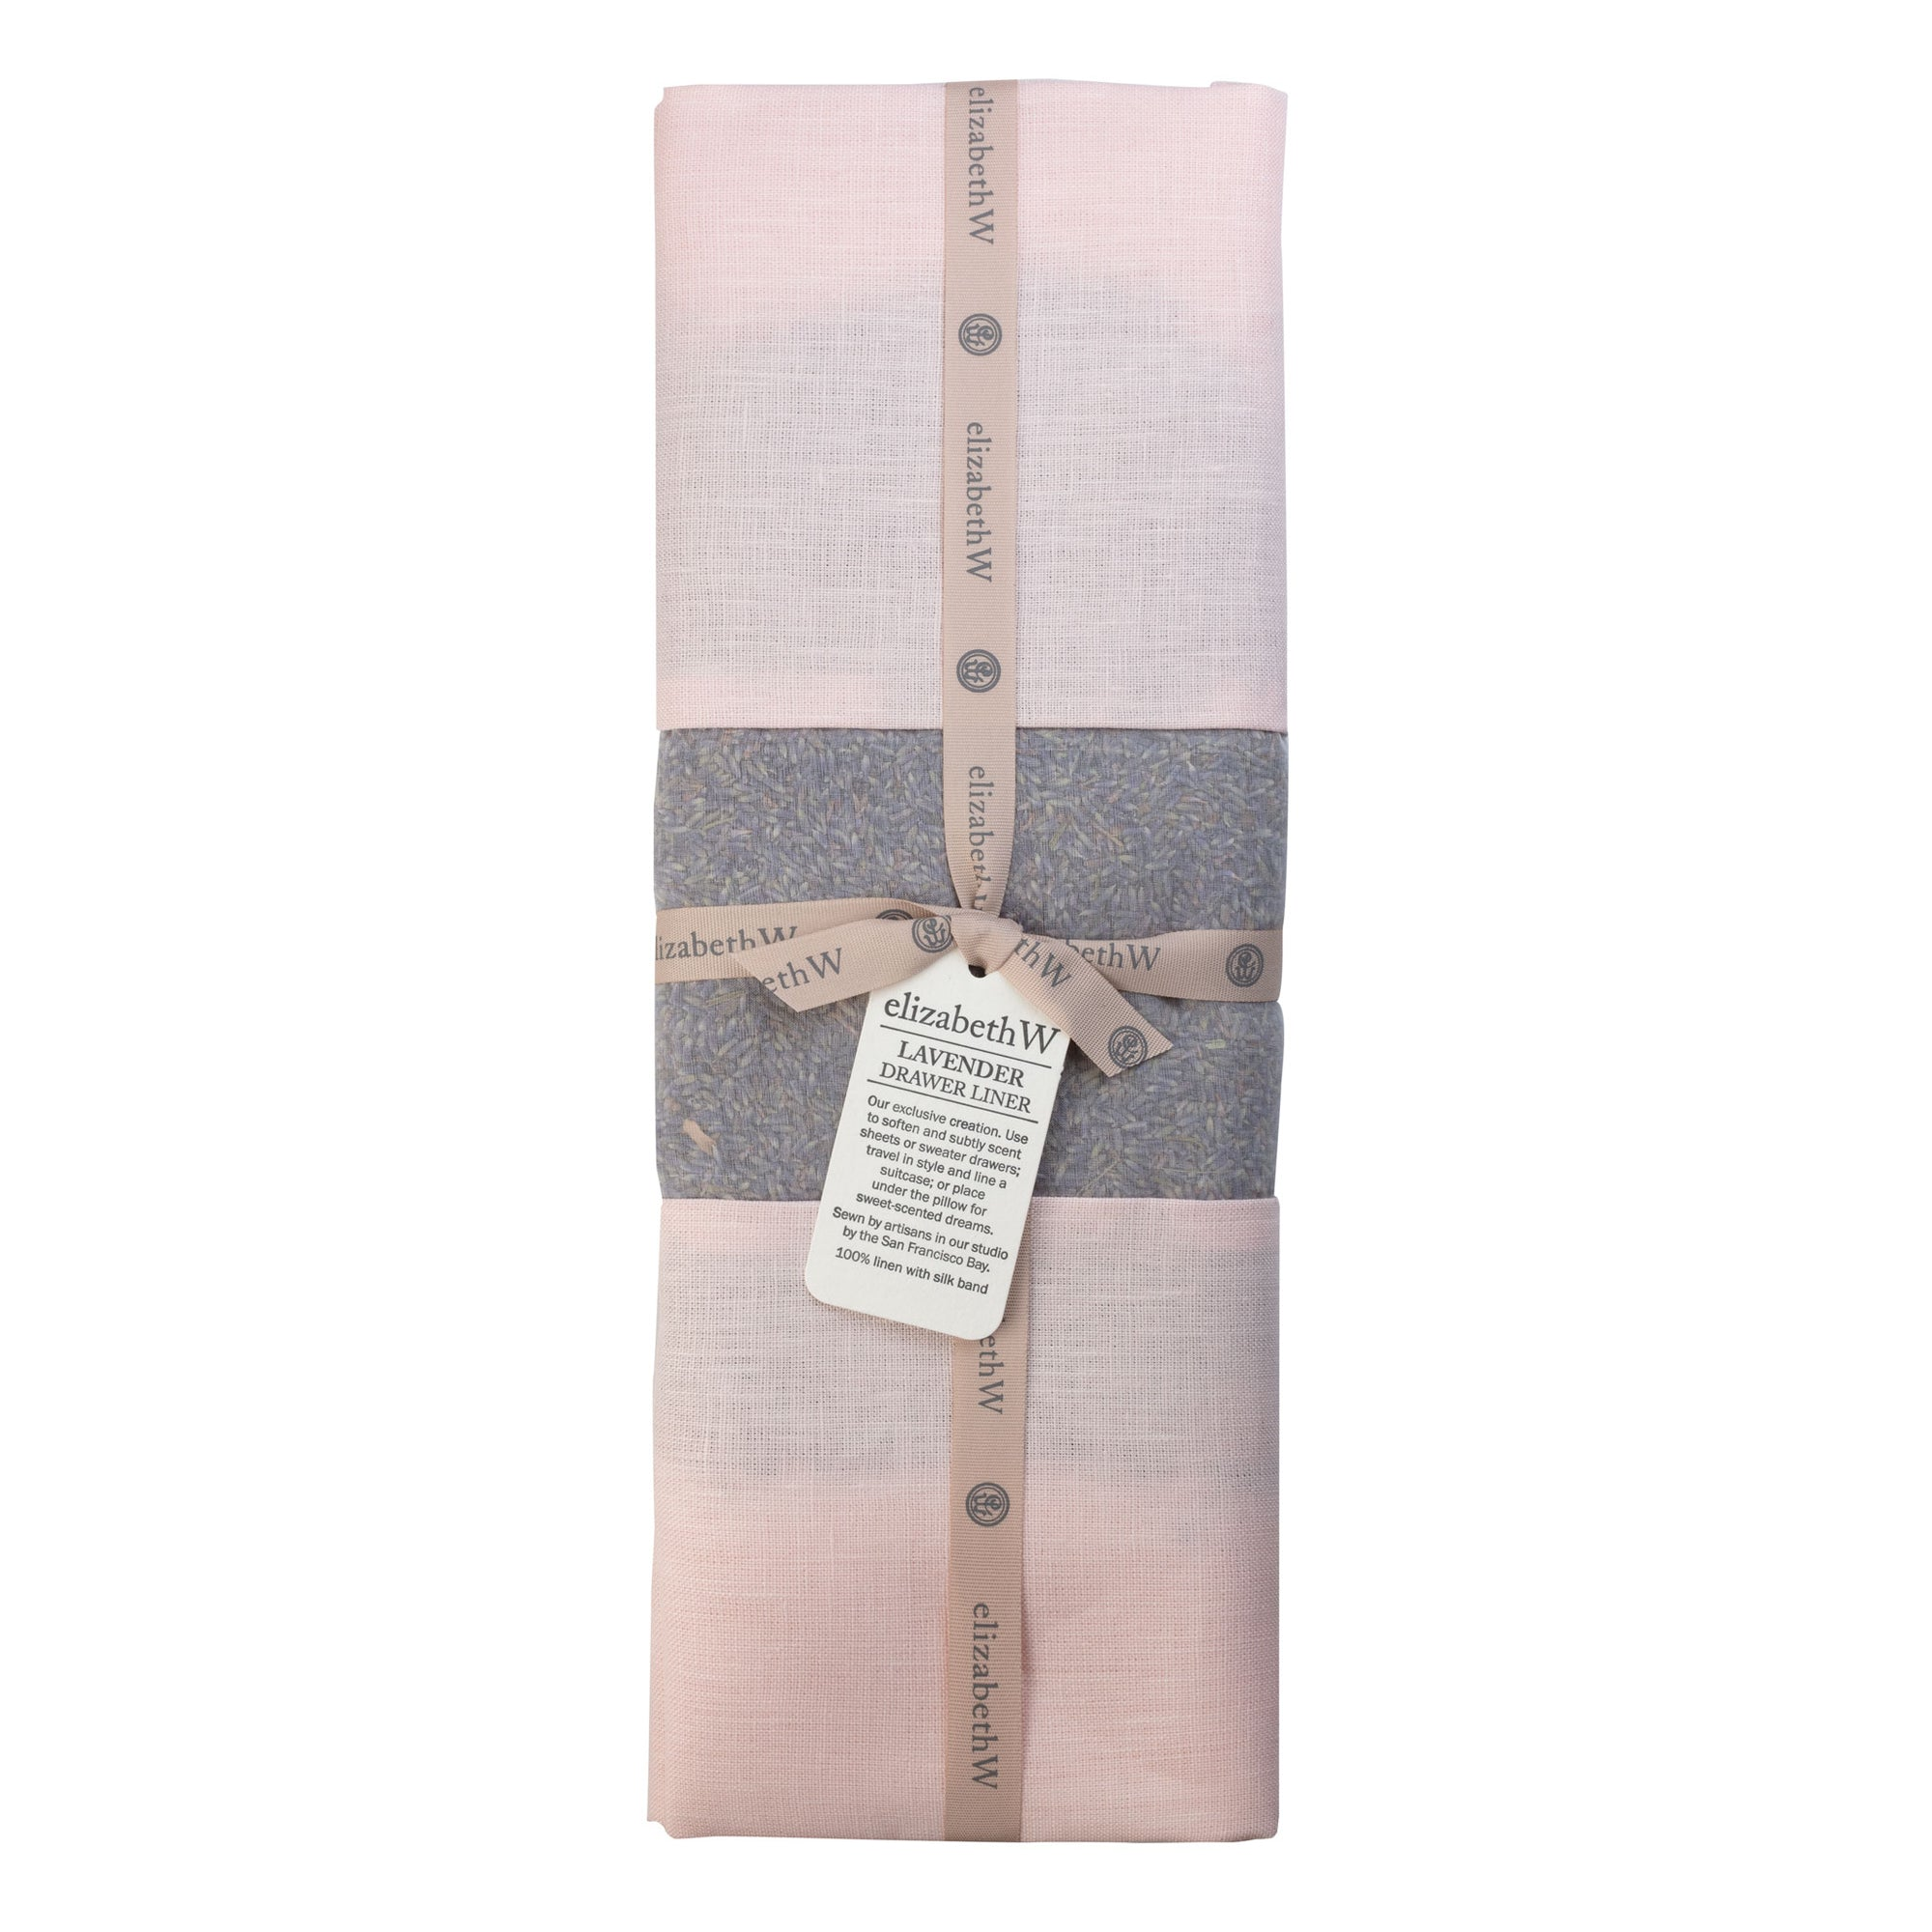 Lavender Drawer Liner in a pink colored linen